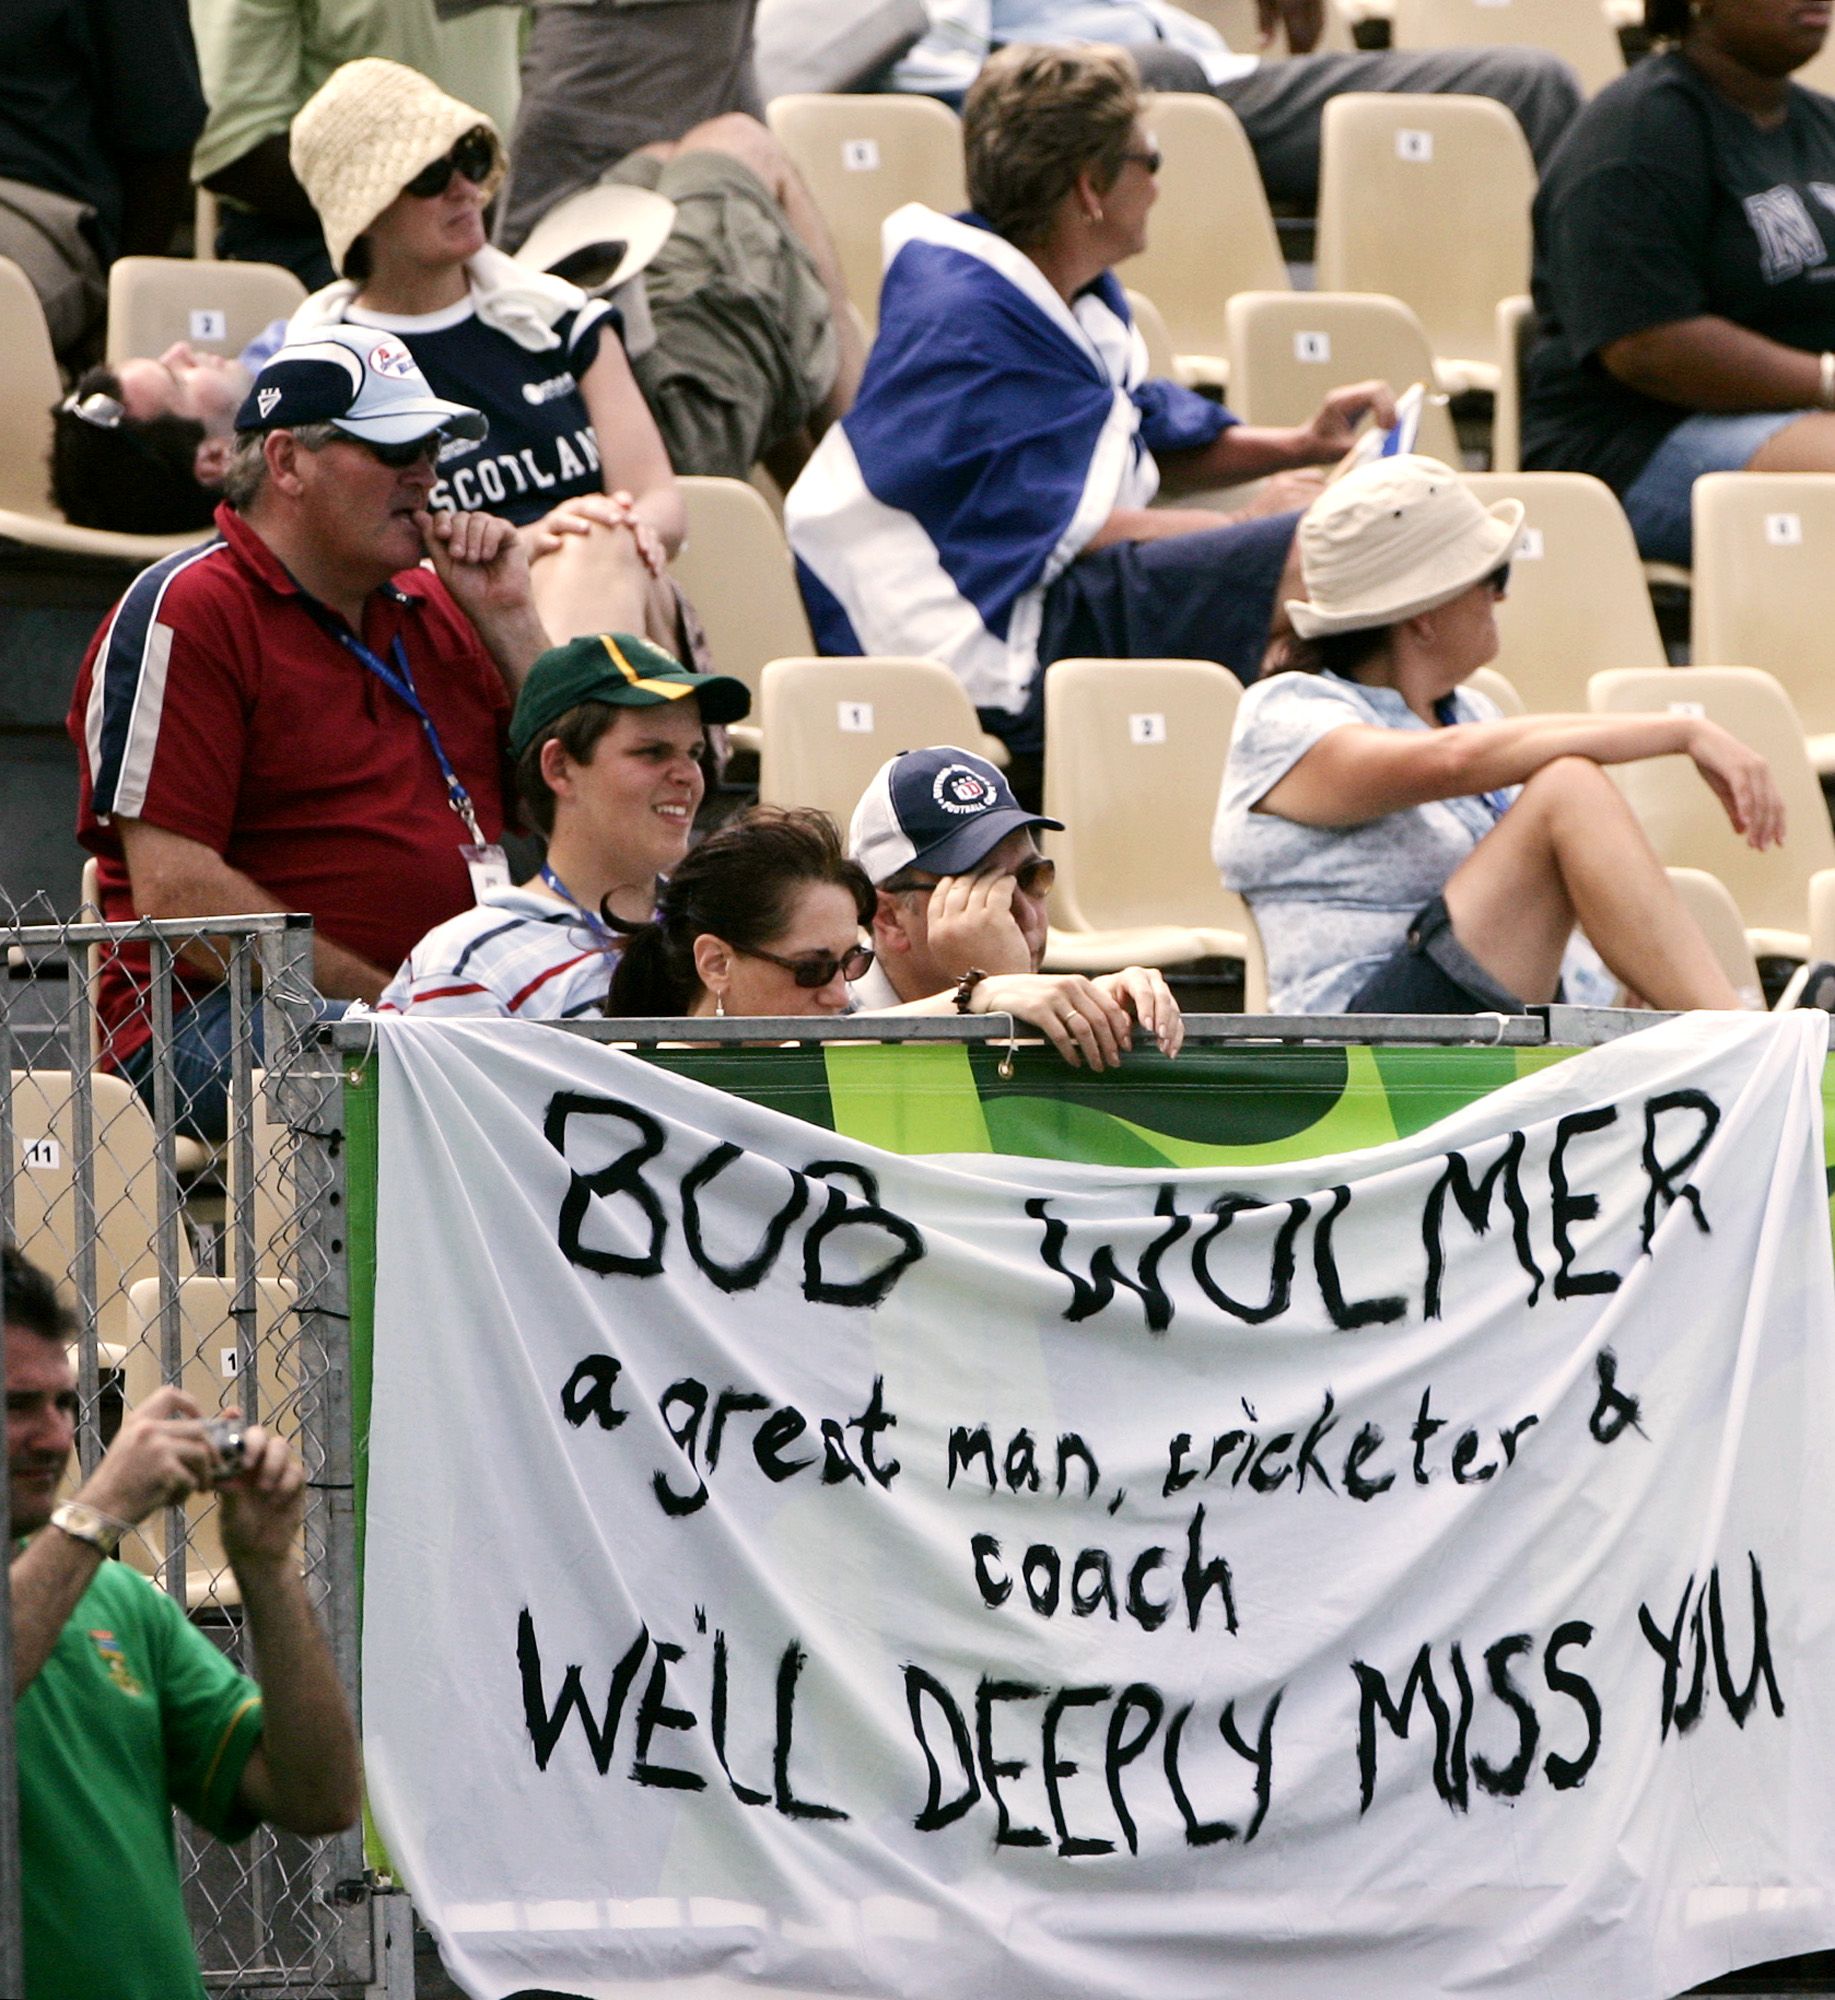 Woolmer was a well-loved player and coach among cricketers as well as fans